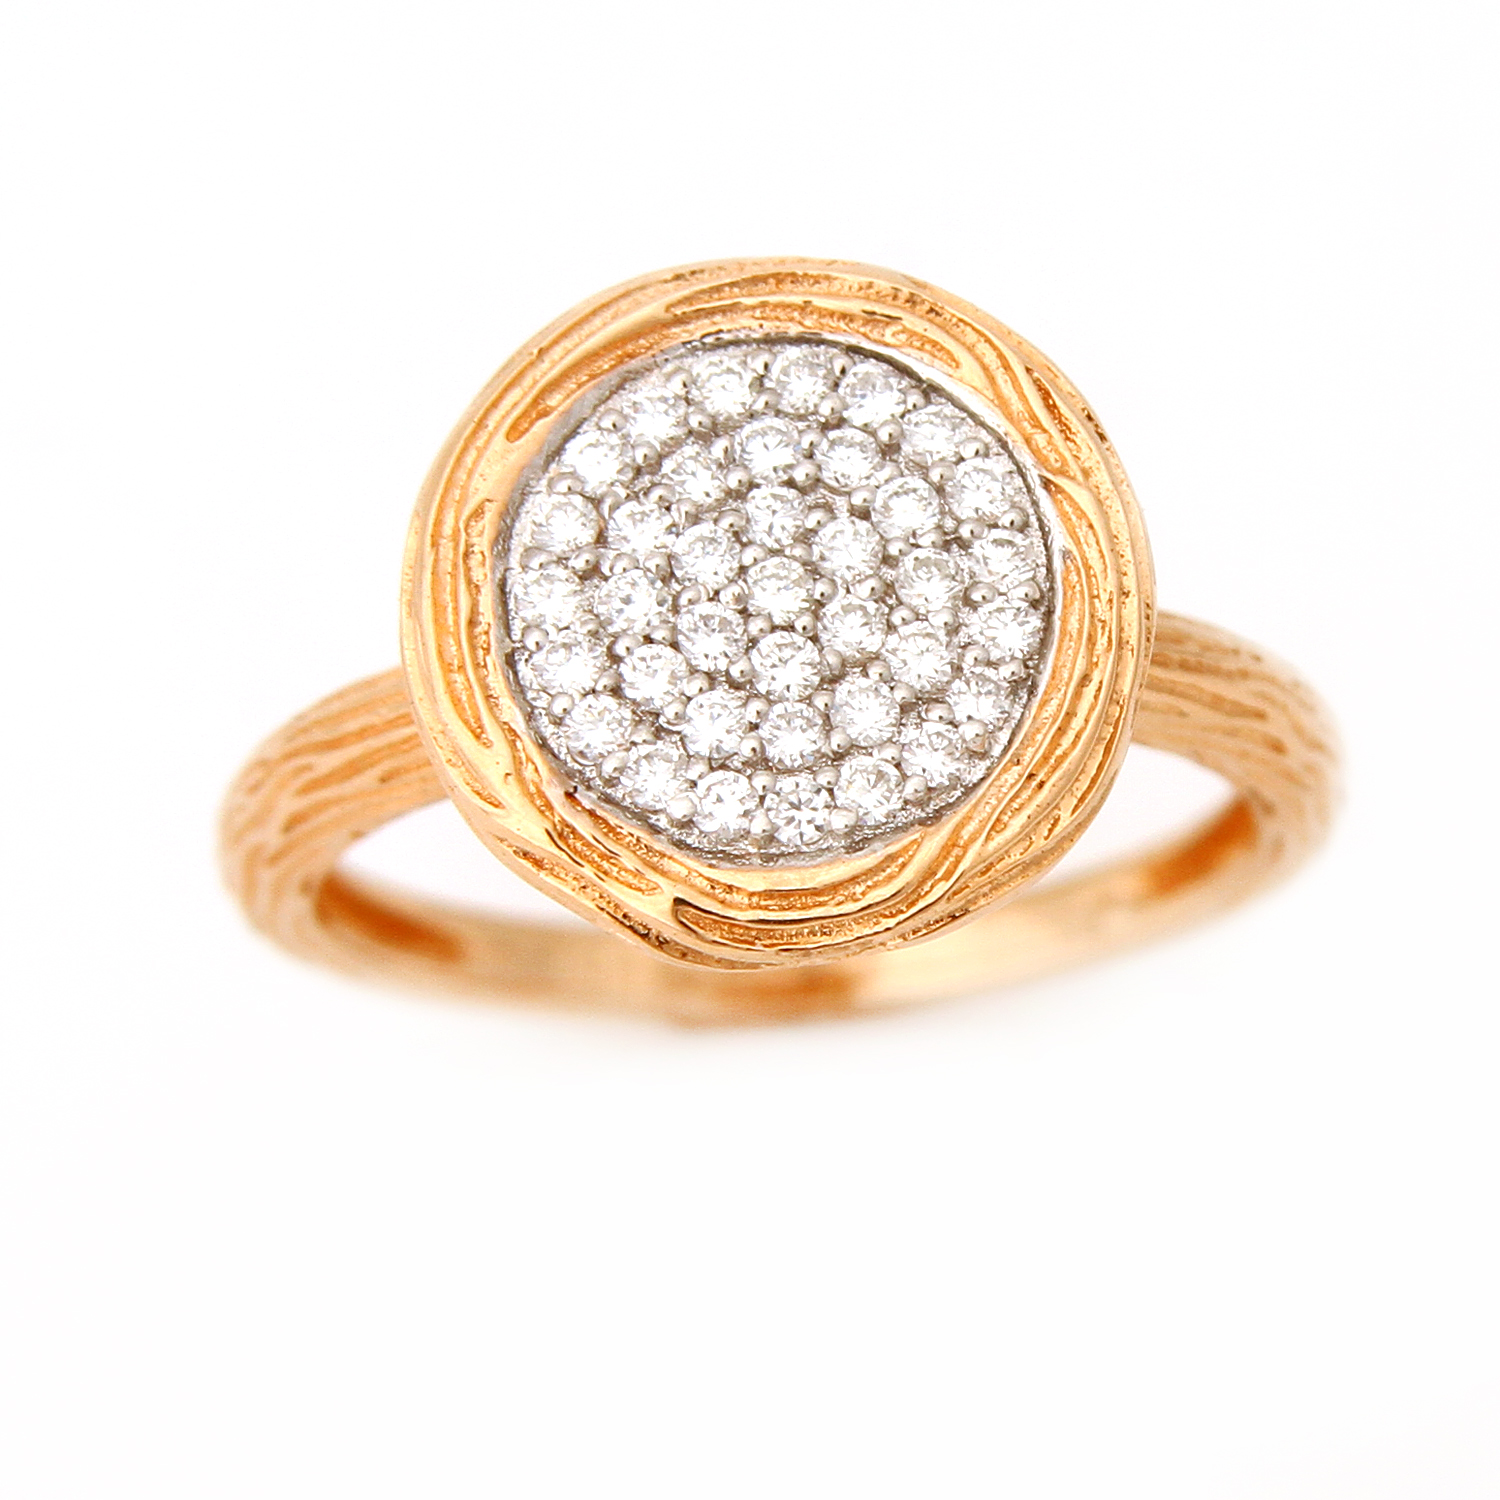 modern non traditional engagement rings traditional wedding rings glosite wedding websites non traditional engagement ring